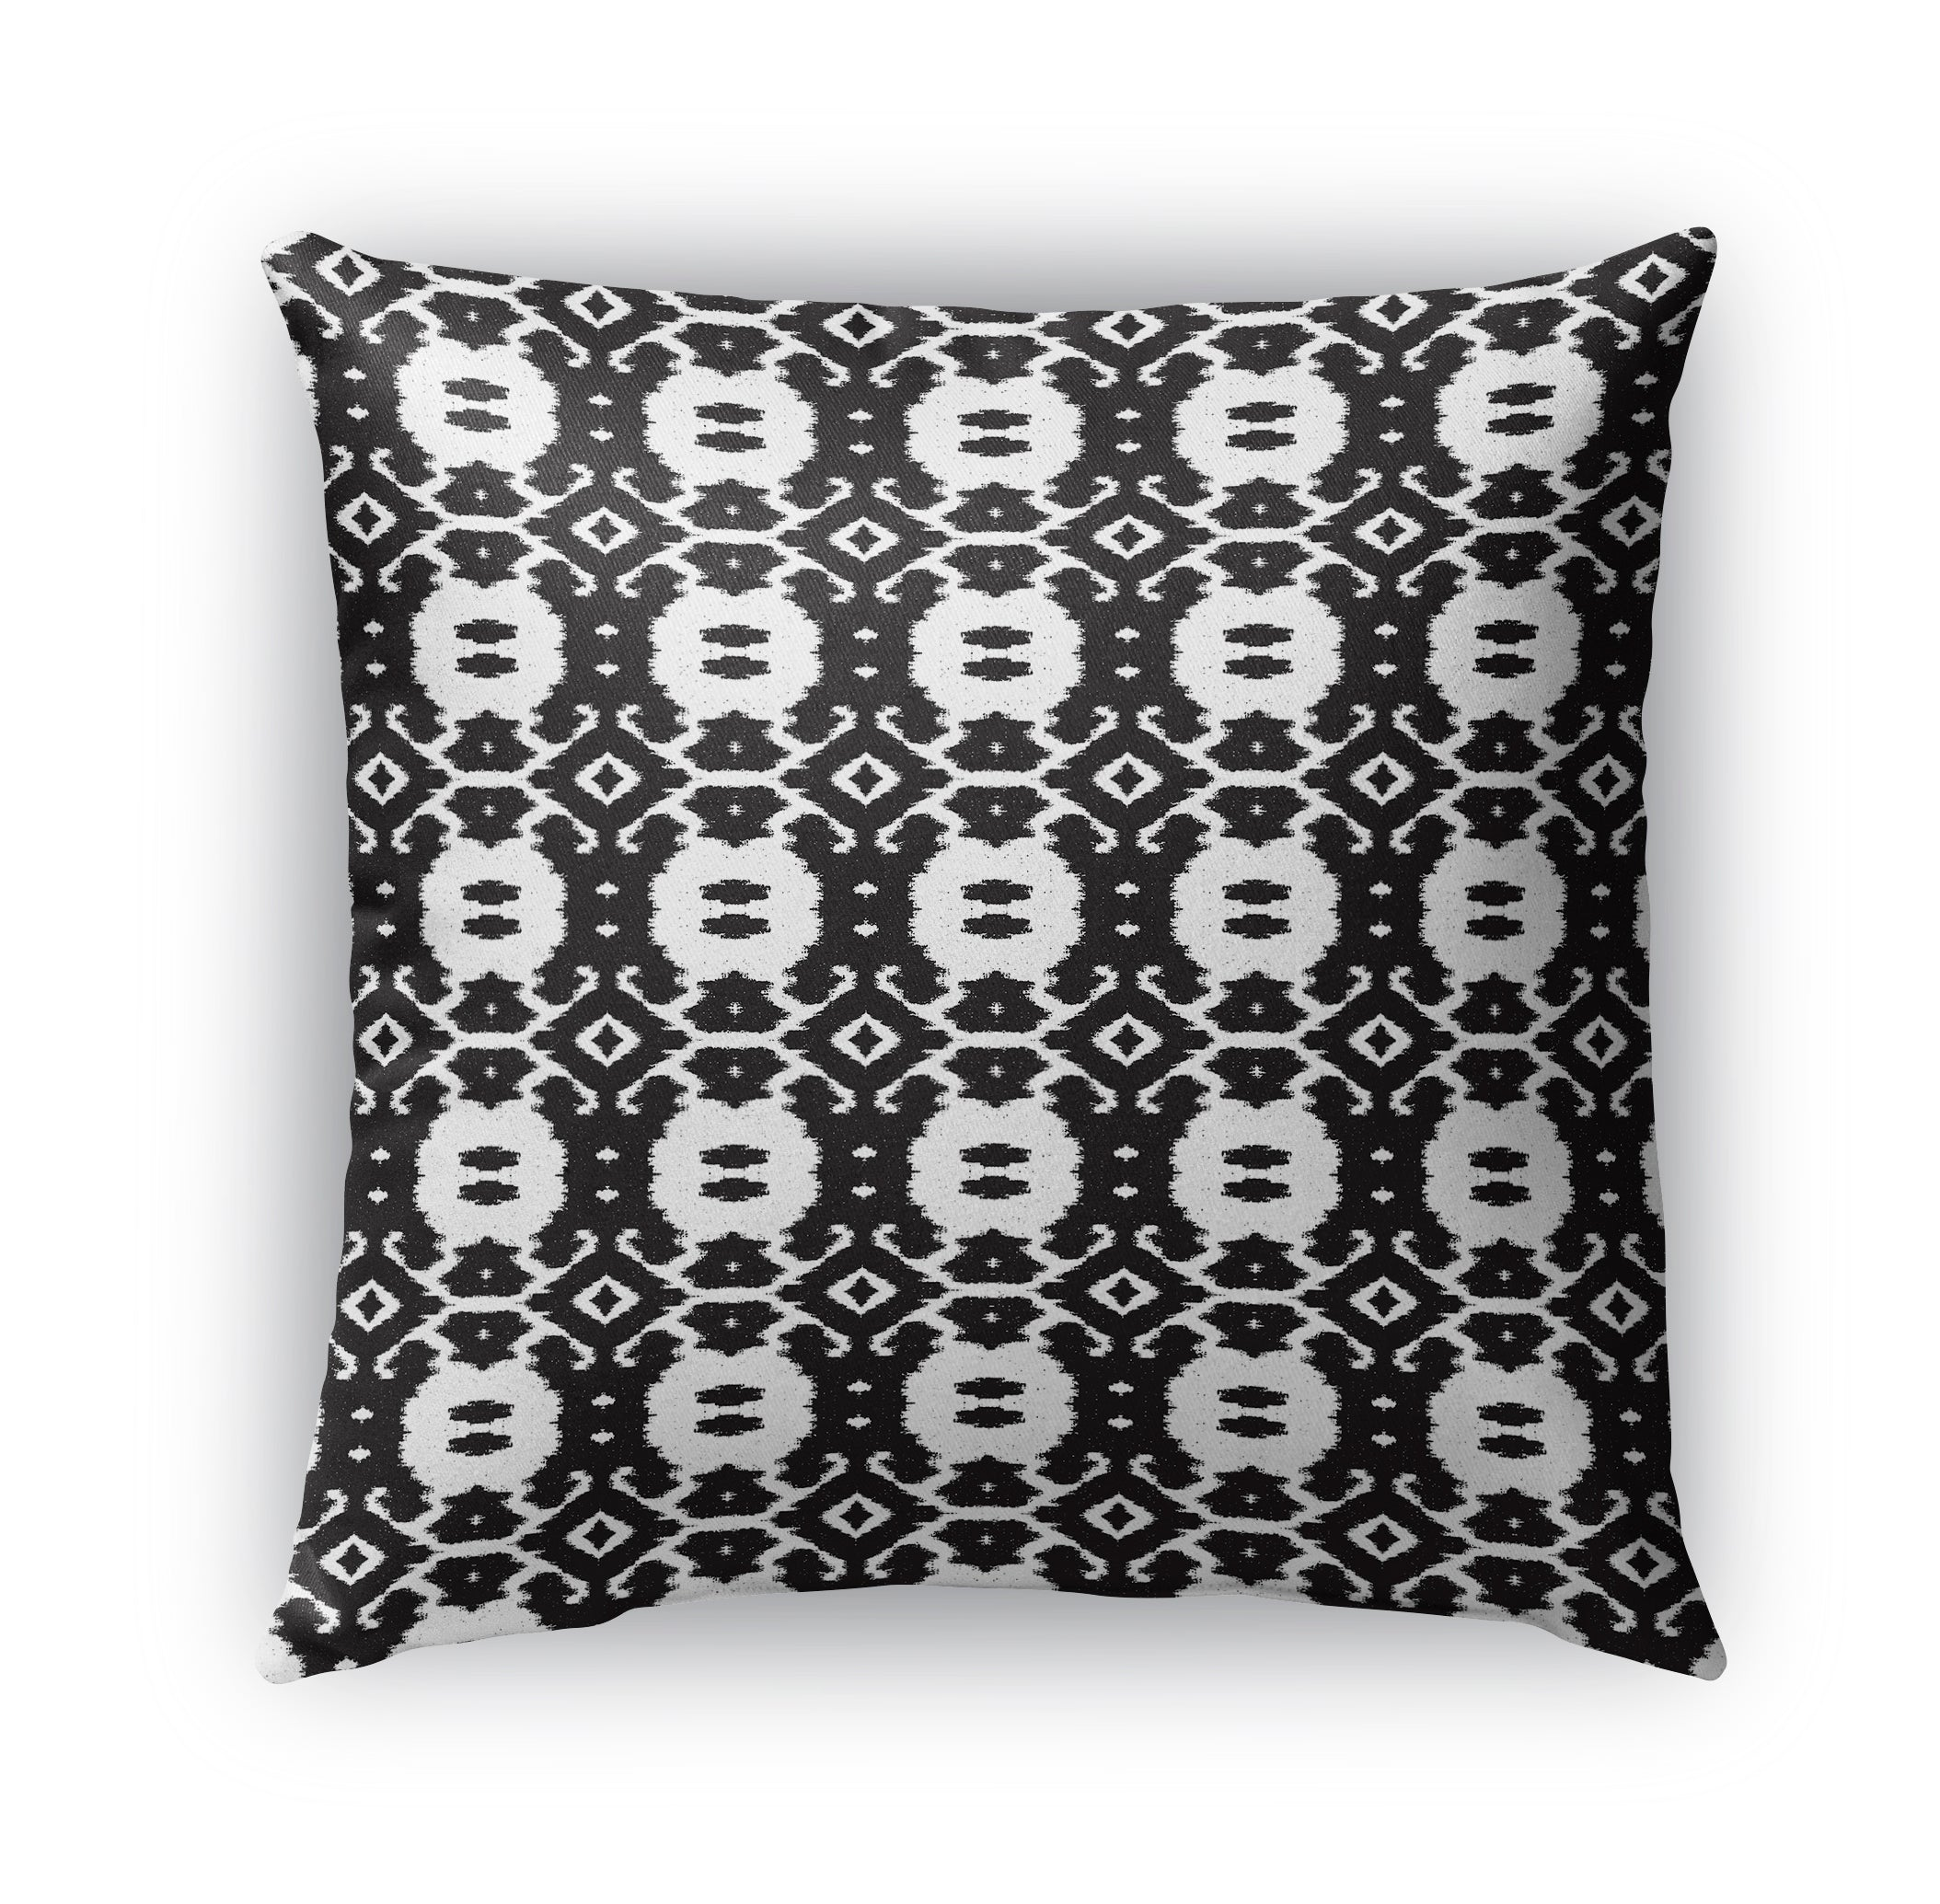 KYOTO Indoor|Outdoor Pillow By Michelle Parascandolo